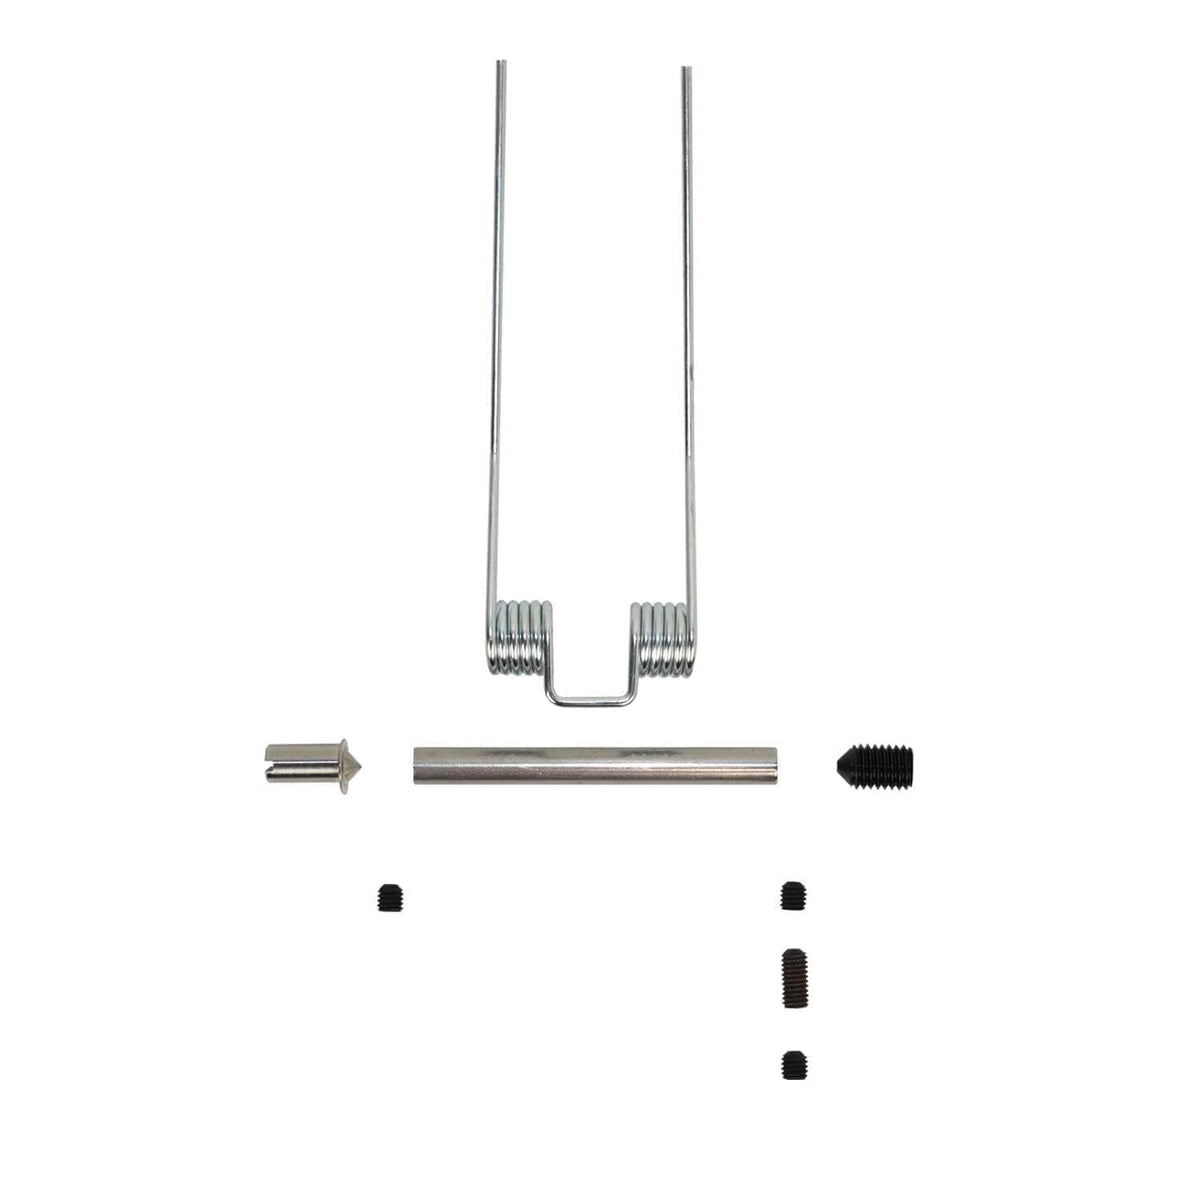 Lid hinge pin kits for use with post 1995 Aga range cookers